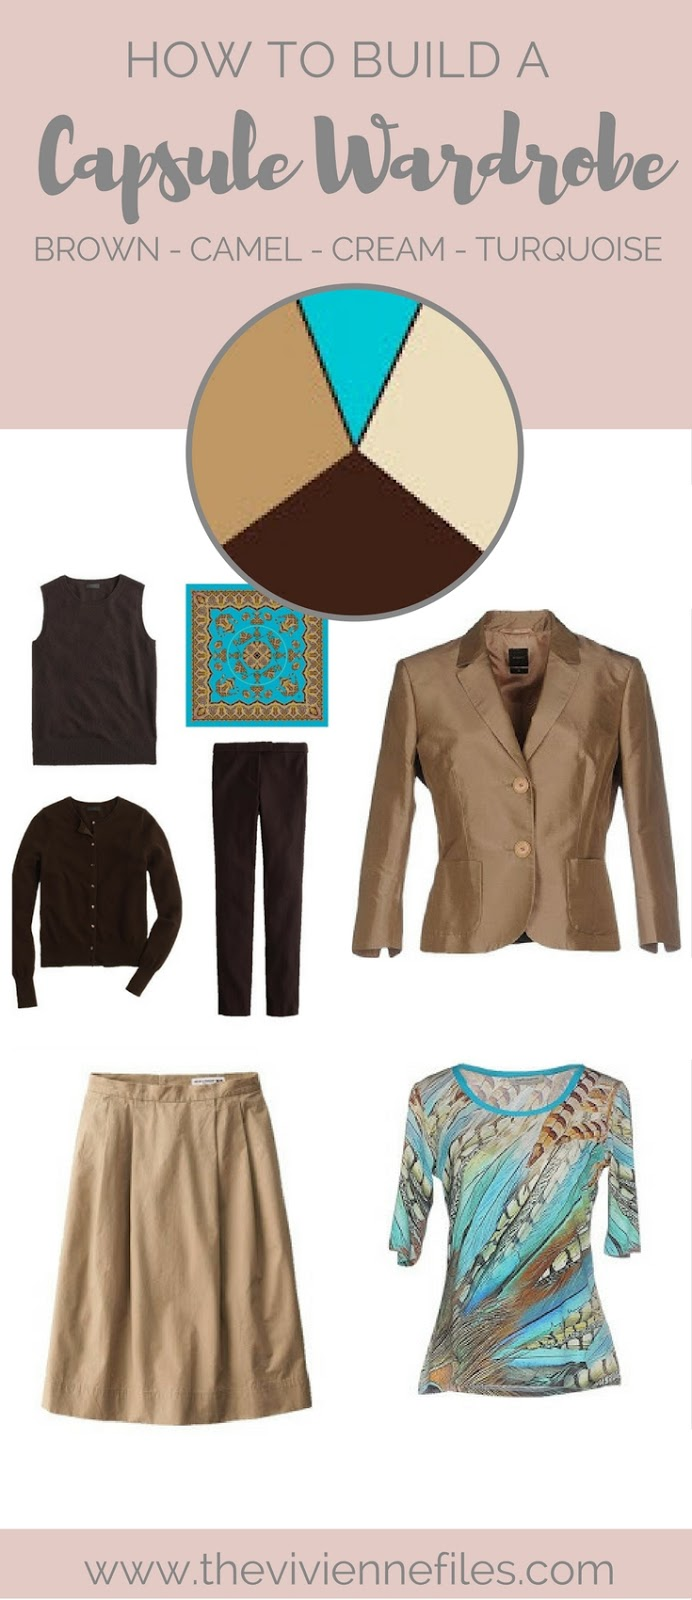 How To Build A Capsule Wardrobe In Brown, Camel, Cream And